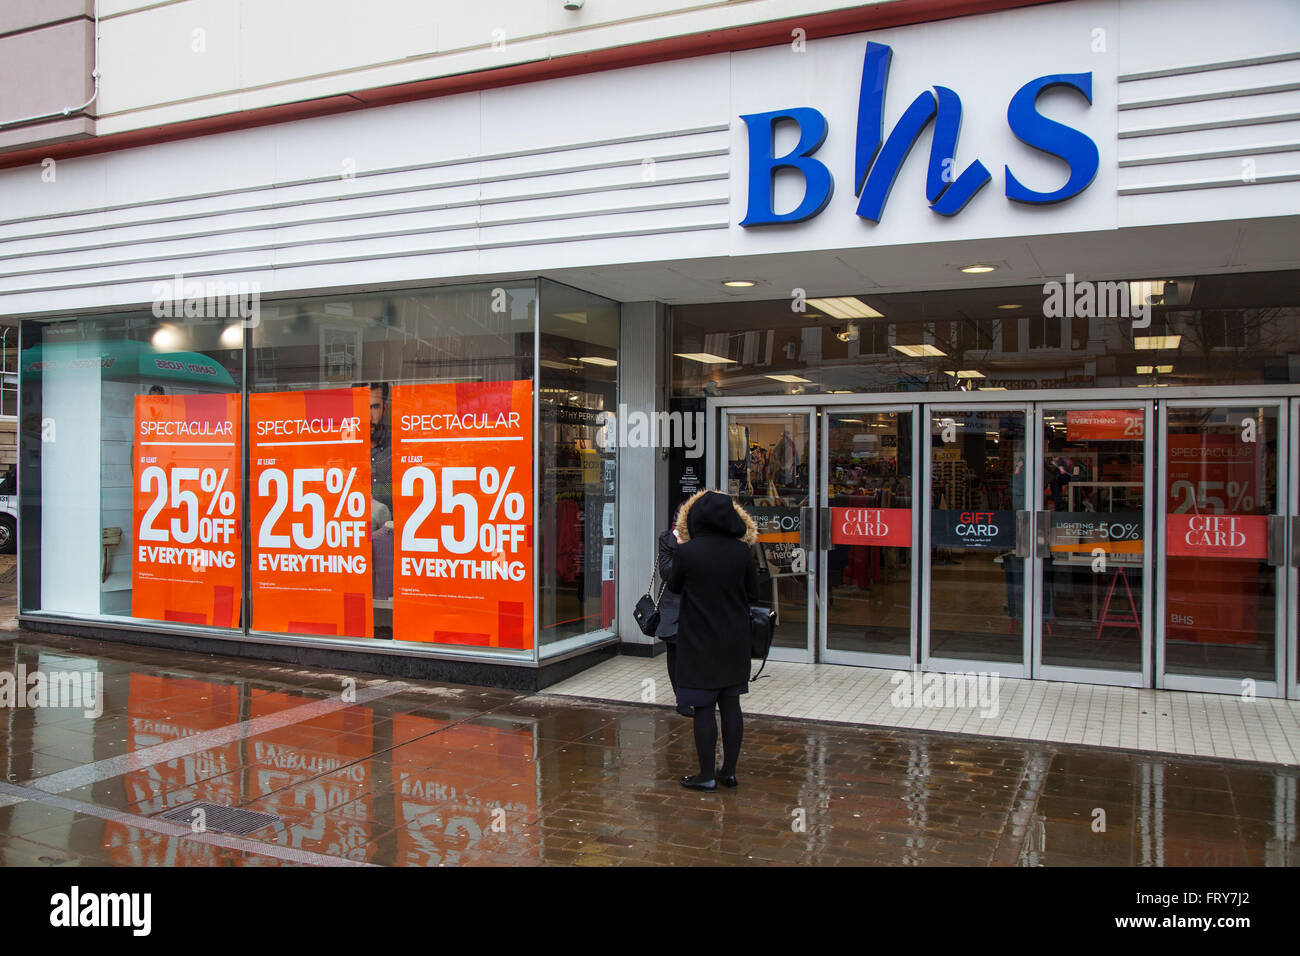 Blackburn, Lancashire, UK 24th March, 2016.  BHS British Home Stores Spectacular Sale.  Stock Clearance after poor - Stock Image